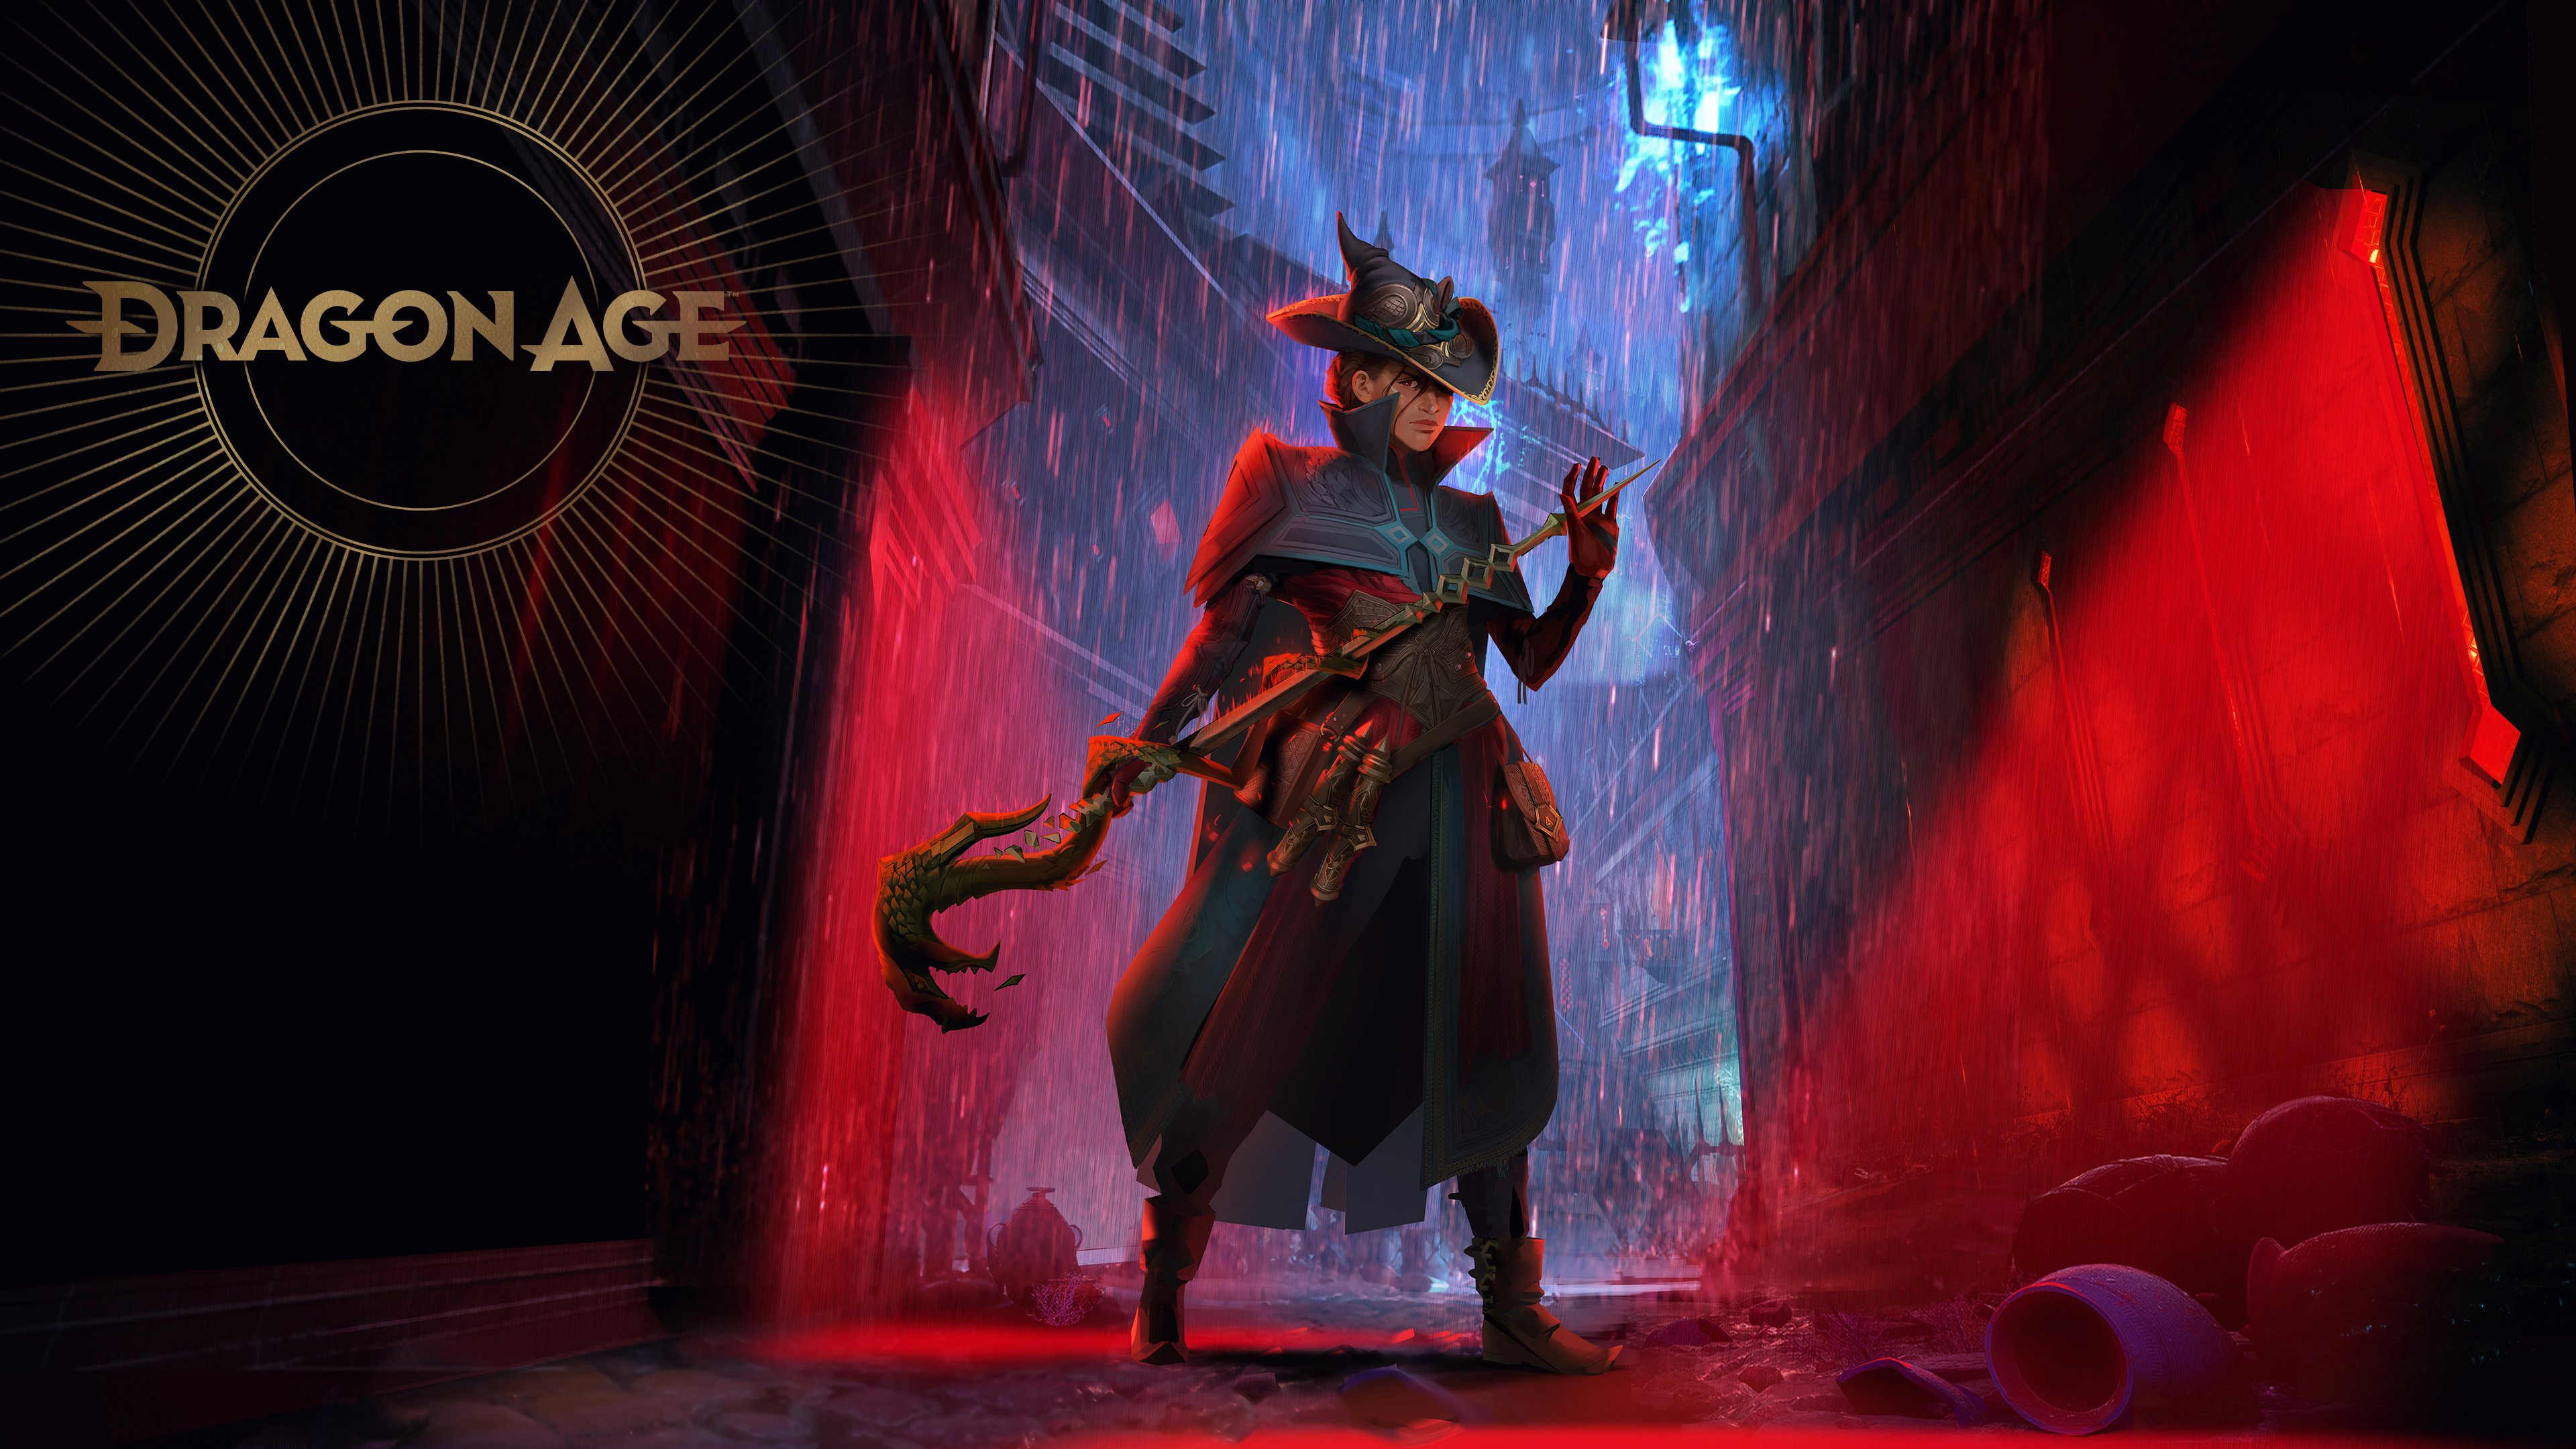 Dragon Age 4: New artwork shows a magician in Tevinter